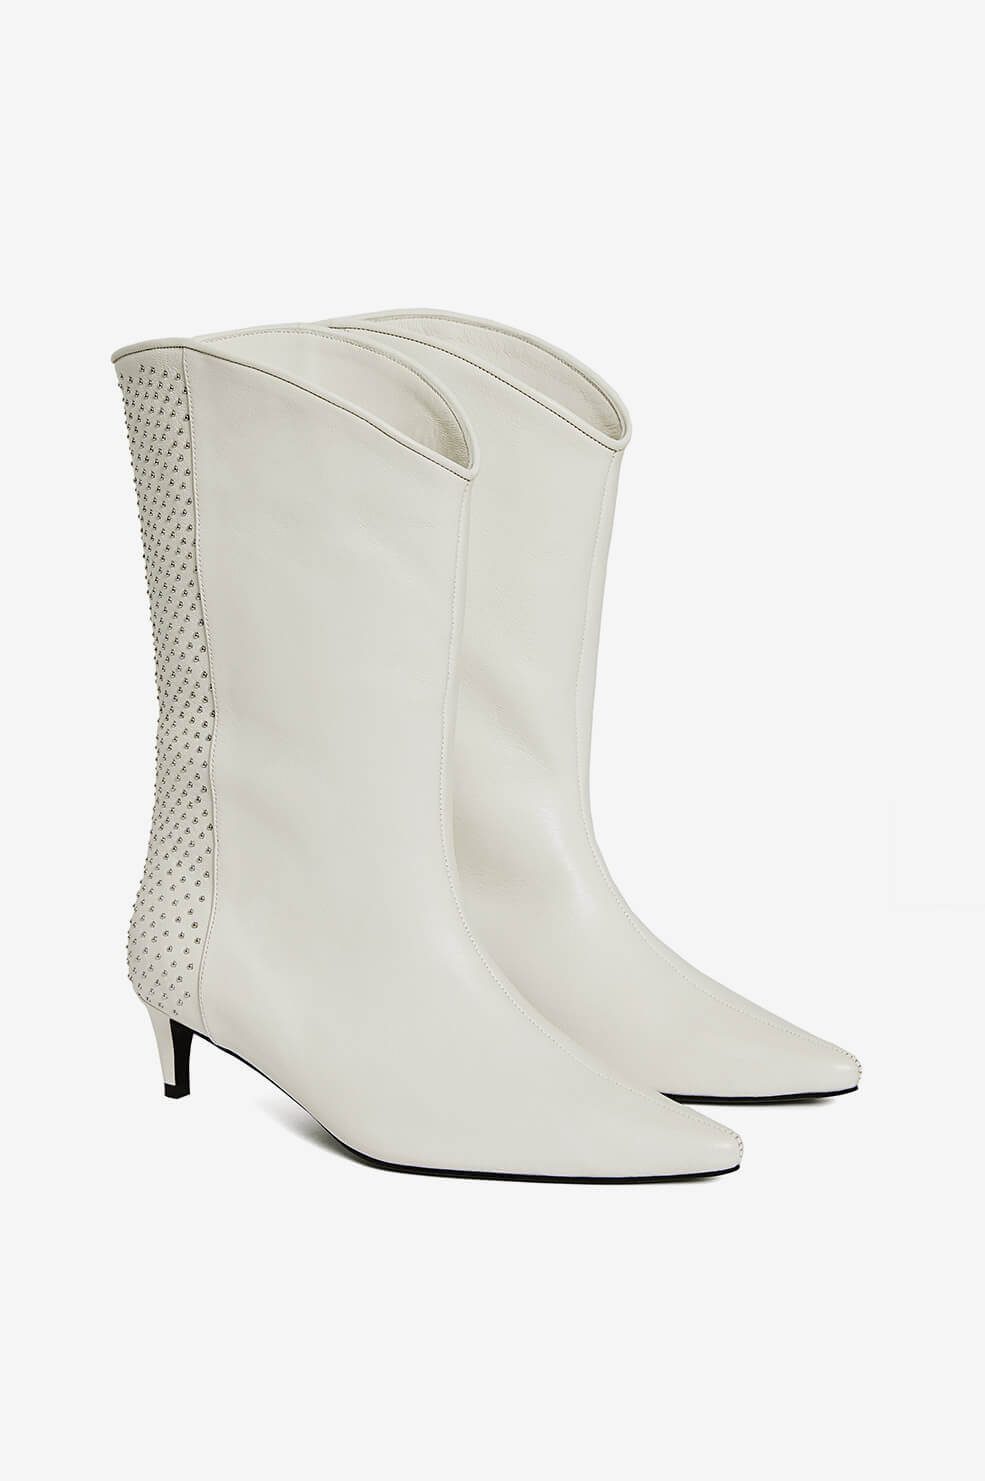 Reagan Boots - White